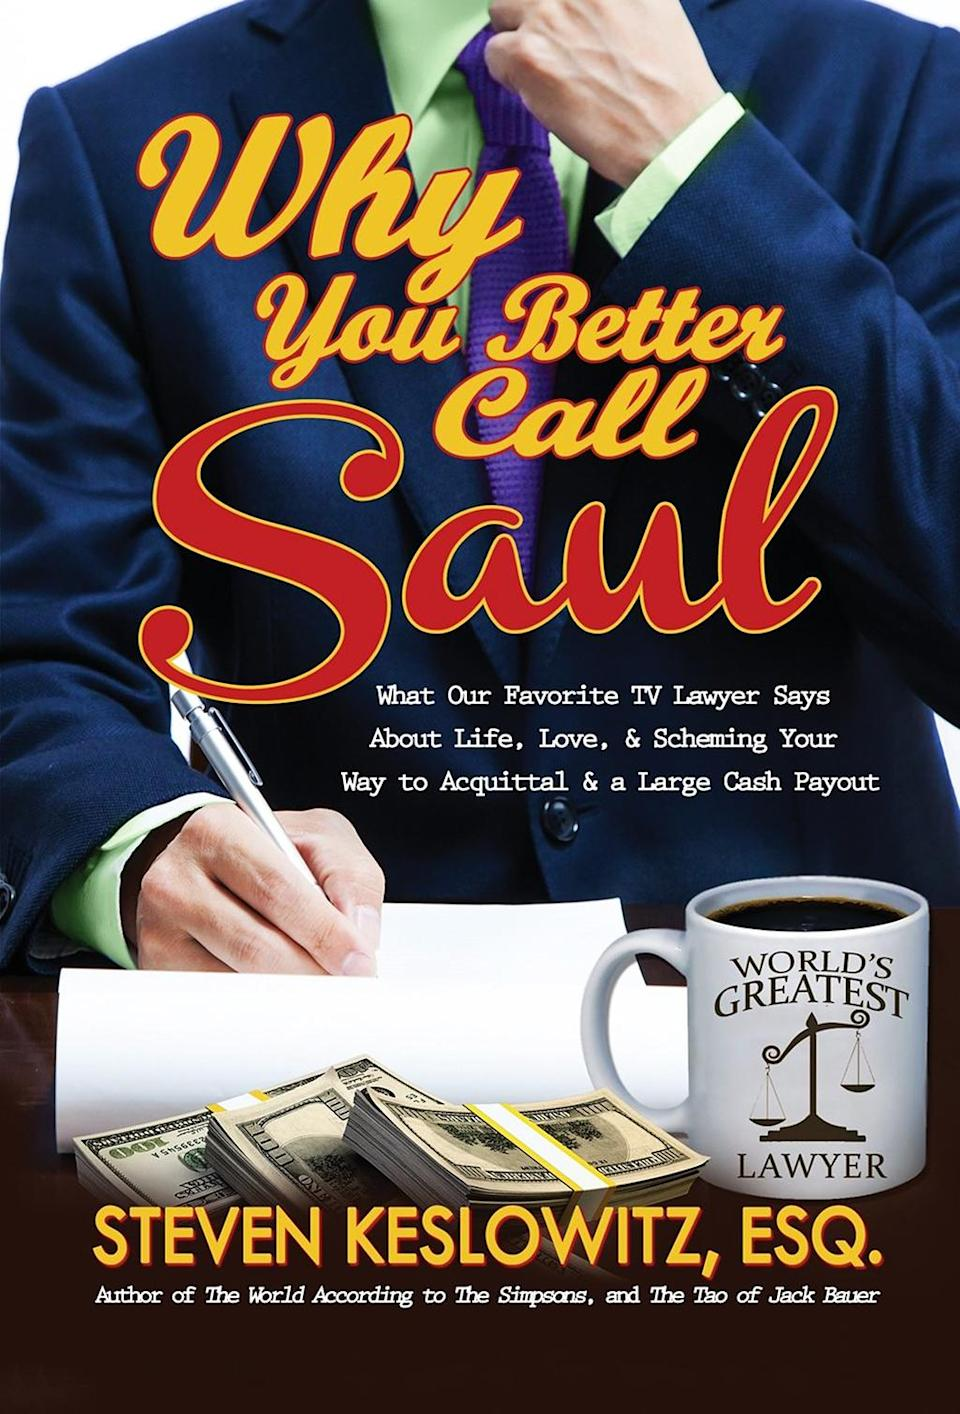 "<p>Real-life attorney and pop culture writer Keslowitz provides <a rel=""nofollow"" href=""https://www.yahoo.com/tv/tagged/better-call-saul"" data-ylk=""slk:Better Call Saul"" class=""link rapid-noclick-resp""><em>Better Call Saul</em></a> fans with the perfect excuse to obsess (continue obsessing?) about the series in the off-season with this book, which dives deep on analyzing our favorite members of the fictional Albuquerque legal community and their cohorts. The relationship between the McGill brothers, Kim's grifting exploits with Jimmy, whether or not the eventual, full-on transformation of Jimmy McGill to Saul Goodman truly reflects who Jimmy is are but a few of the thought-provoking questions the book raises, and the delights to be found in the chapter titled ""From Kettlemans to Cobblers: A Critical Analysis of the Legal and Ethical Issues on <em>Better Call Saul</em>"" will not only tickle you, but almost certainly spark a Season 3 — and 1 and 2, let's be honest — rewatch.<br><br>(QuillPop) </p>"